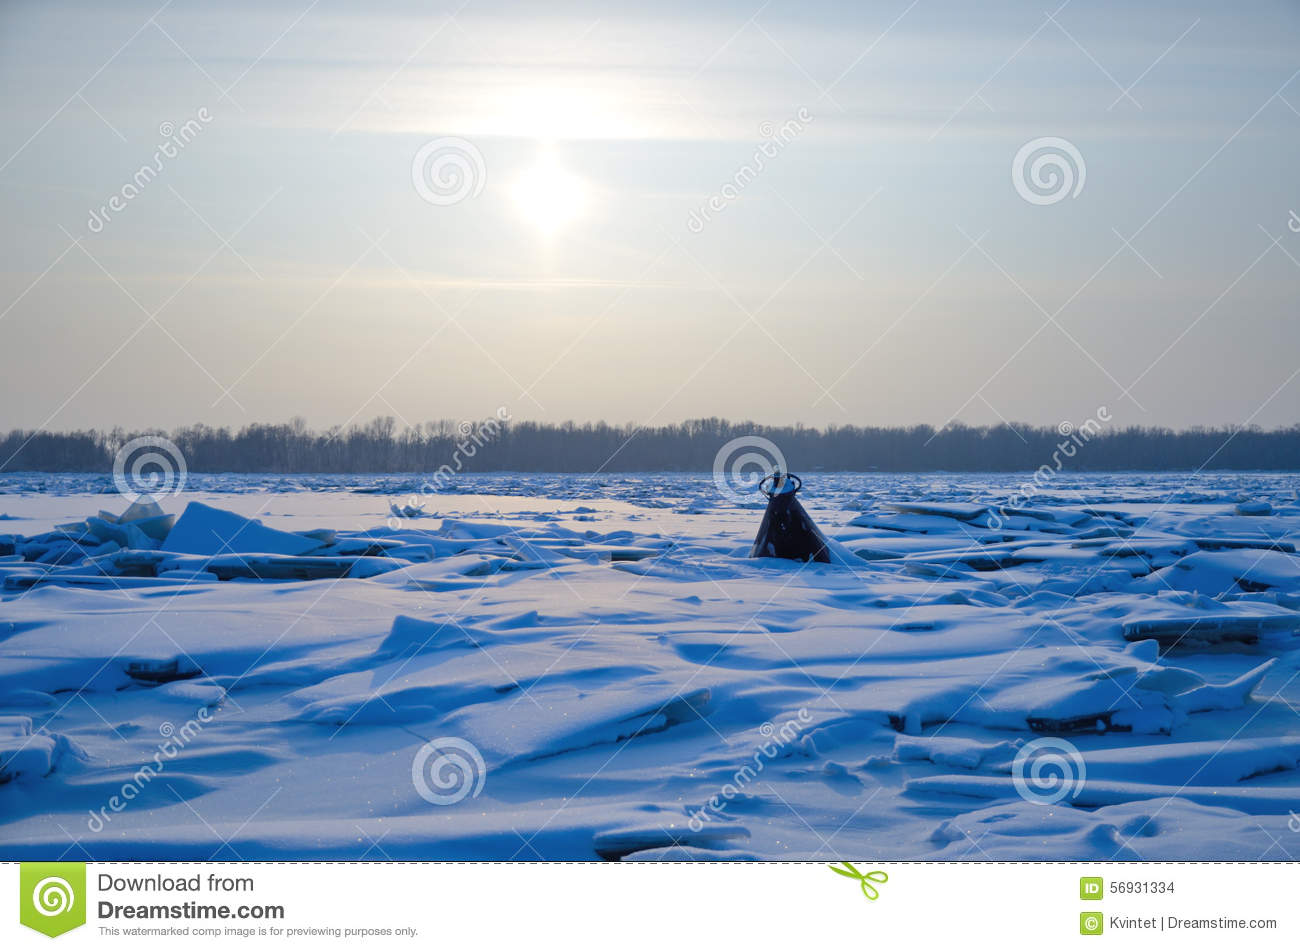 The hummocks and the buoy on the river in winter under the sun